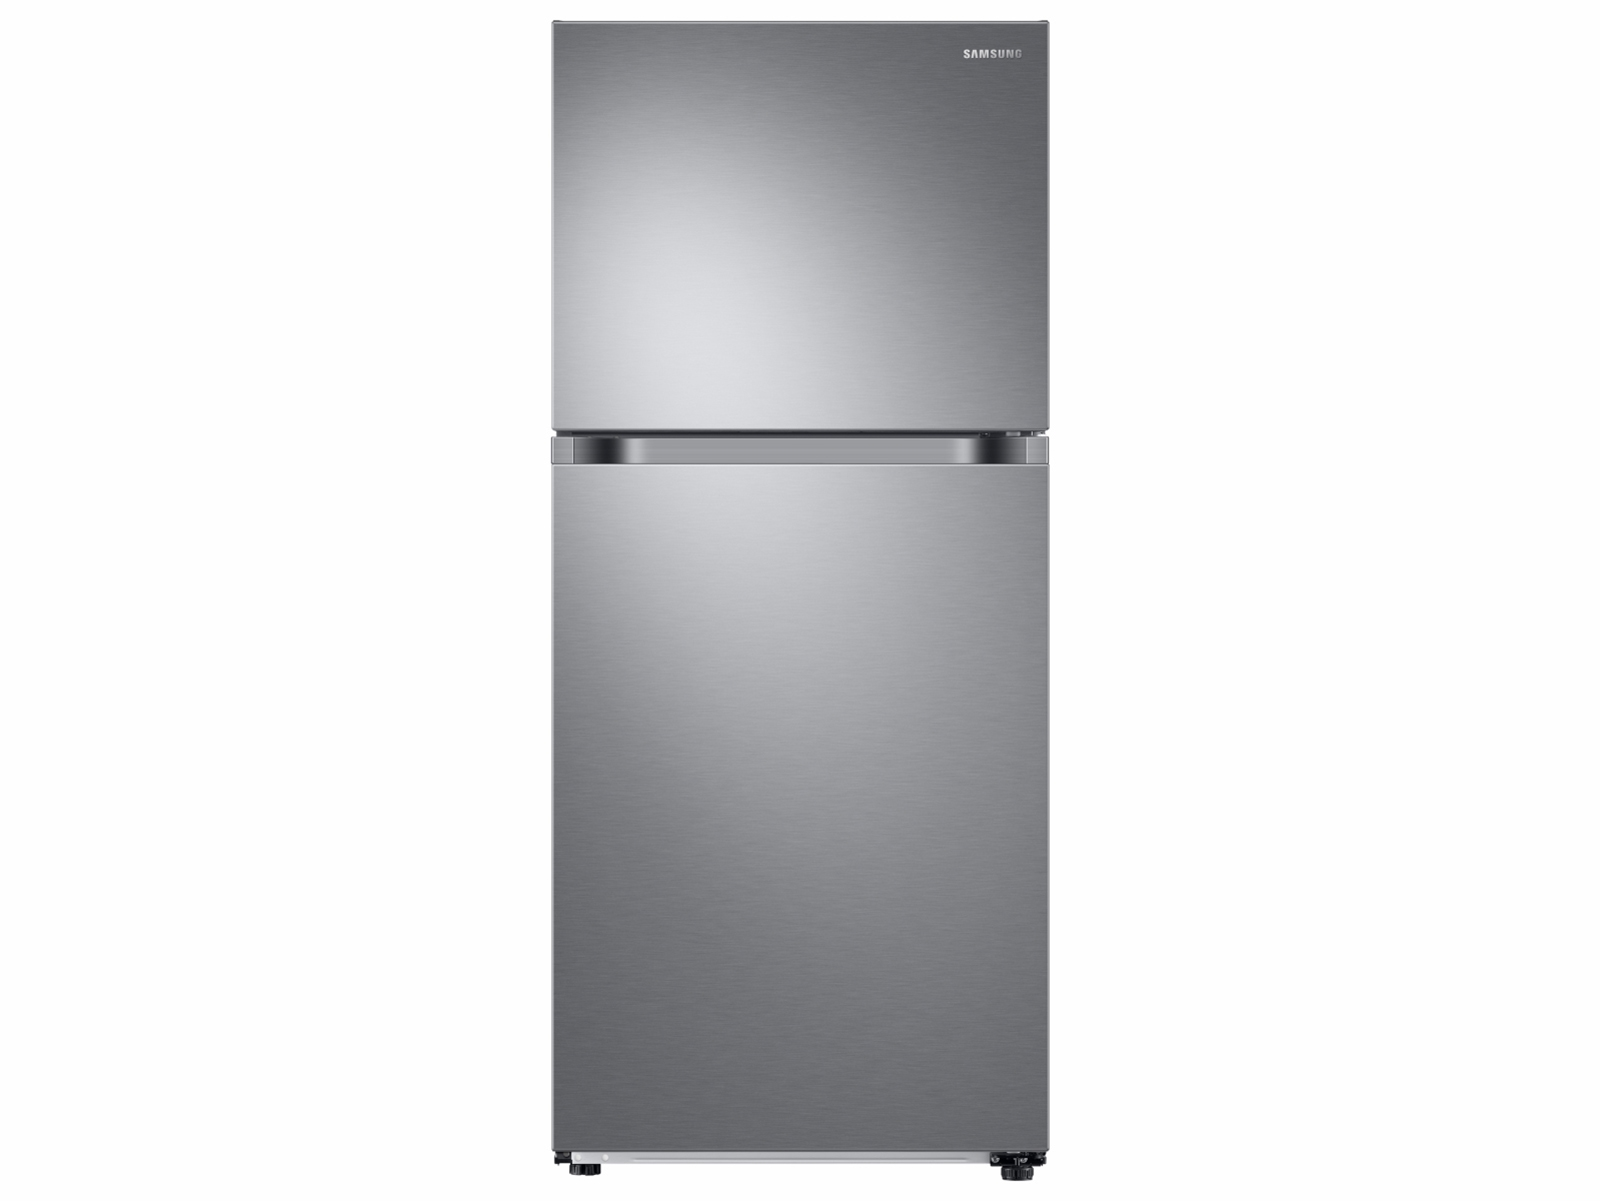 Samsung 18 cu. ft. Top Freezer Refrigerator with FlexZone in Stainless Steel, Fingerprint Resistant Stainless Steel